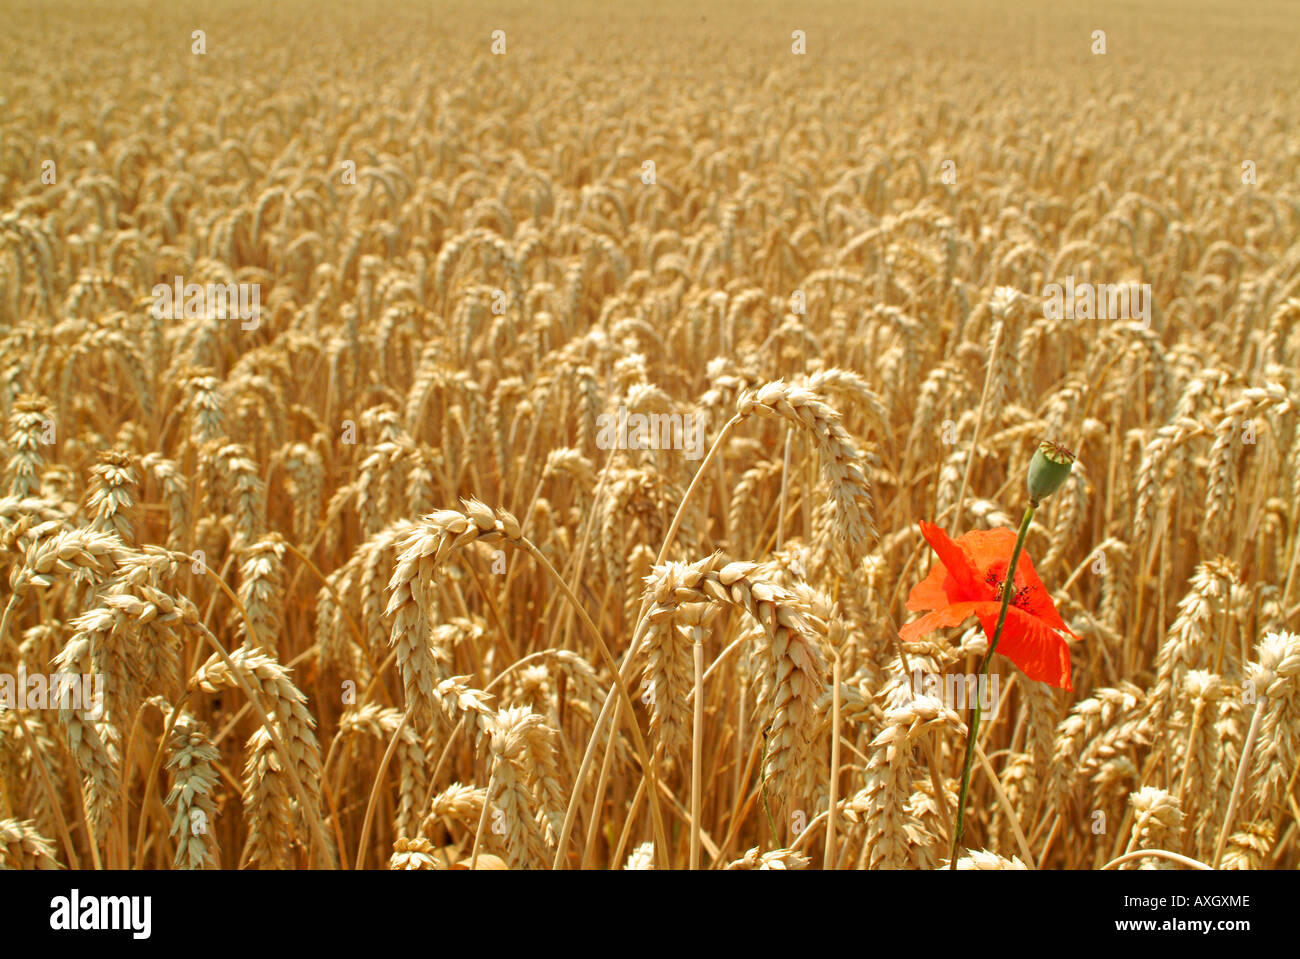 rye field and a poppy Roggenfeld und ein Mohn - Stock Image